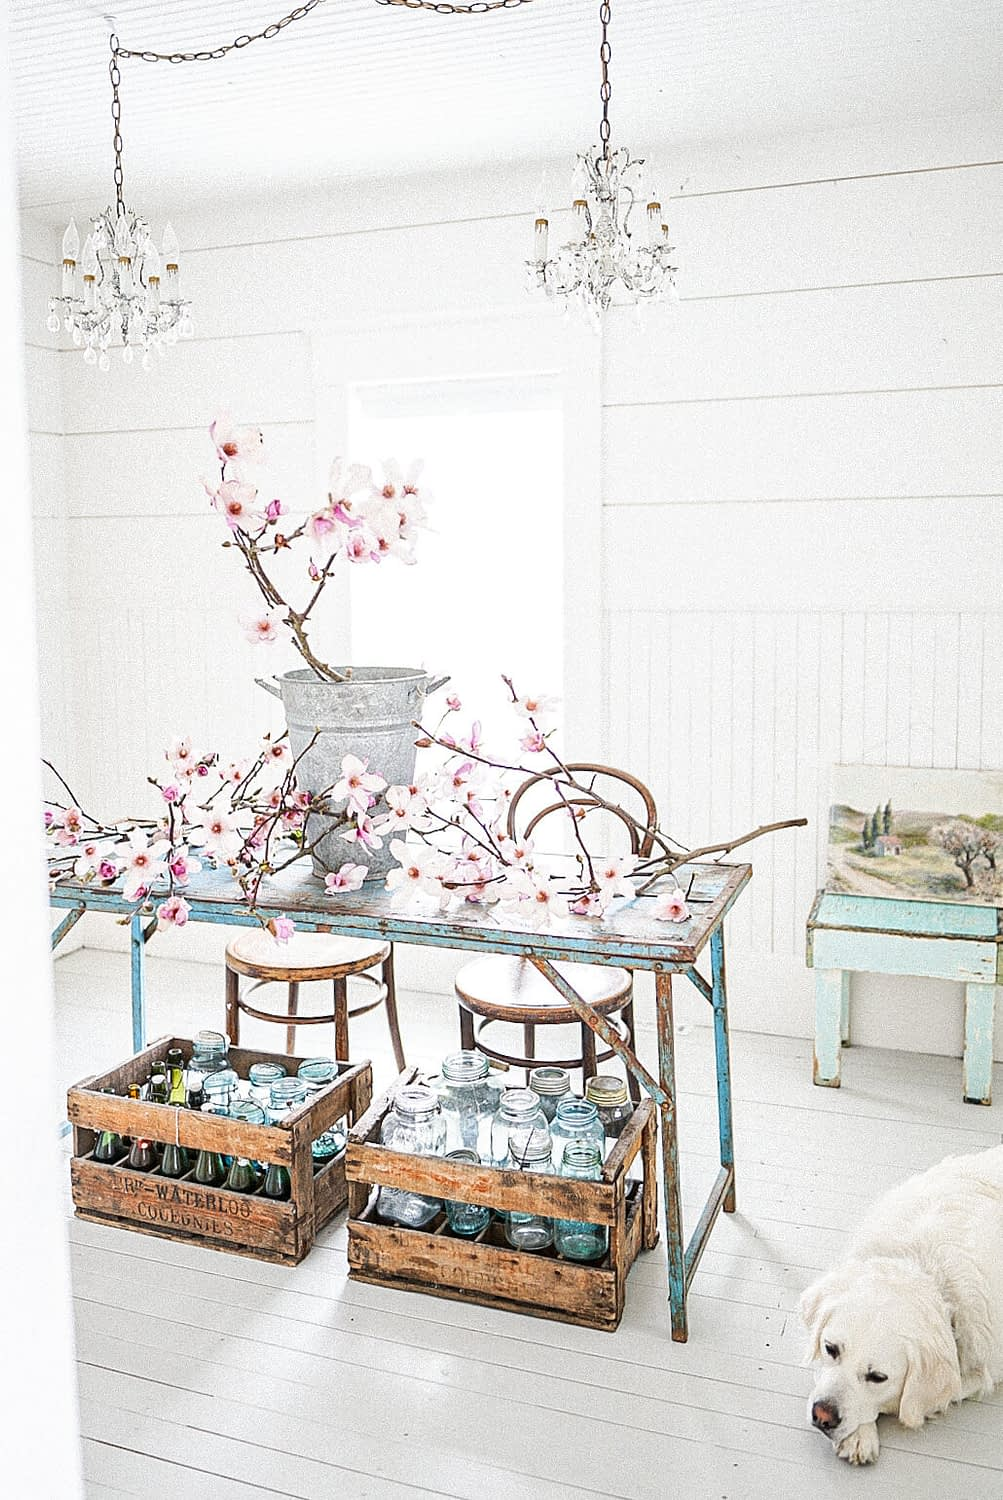 magnolia flowers in an office